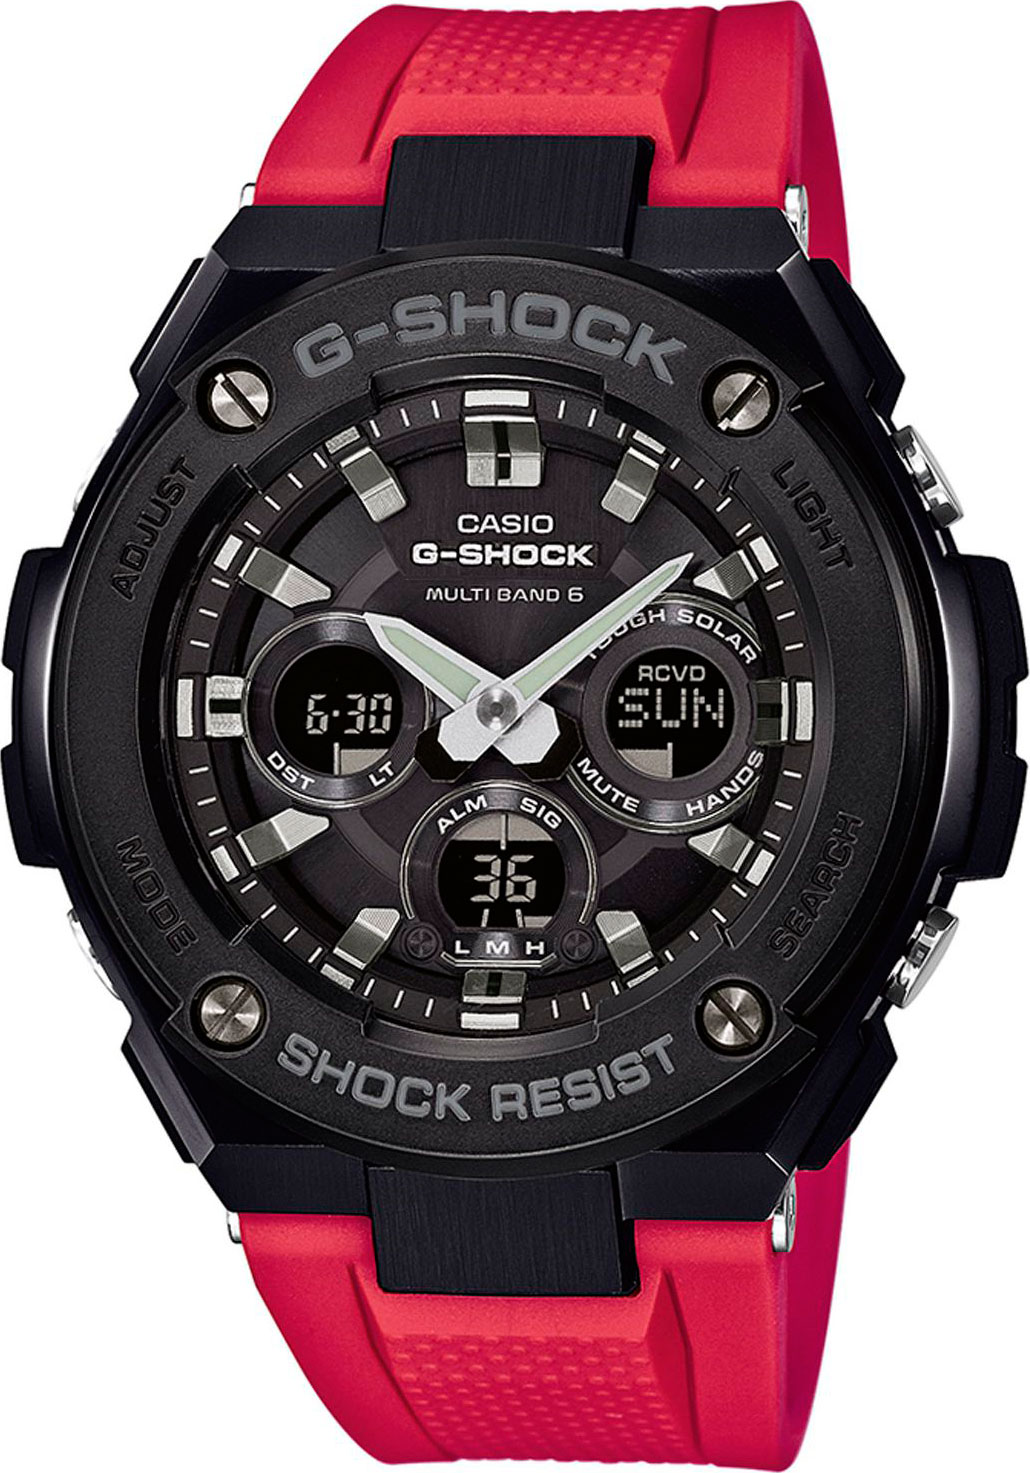 цена Casio G-shock G-Steel GST-W300G-1A4 онлайн в 2017 году